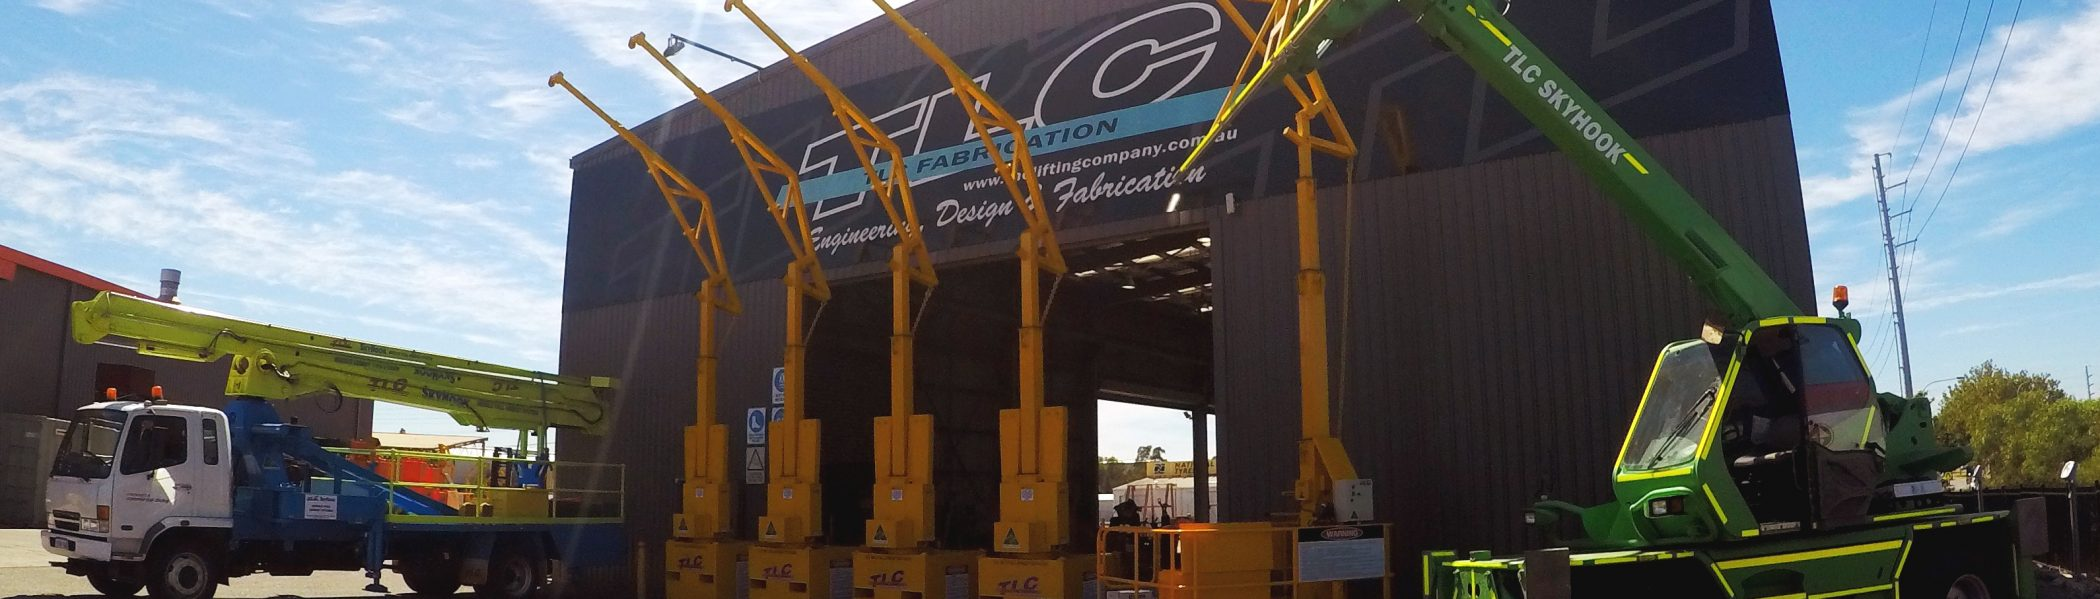 SkyHook-Range | TLC Skyhook | Lifting Company in Perth Western Australia